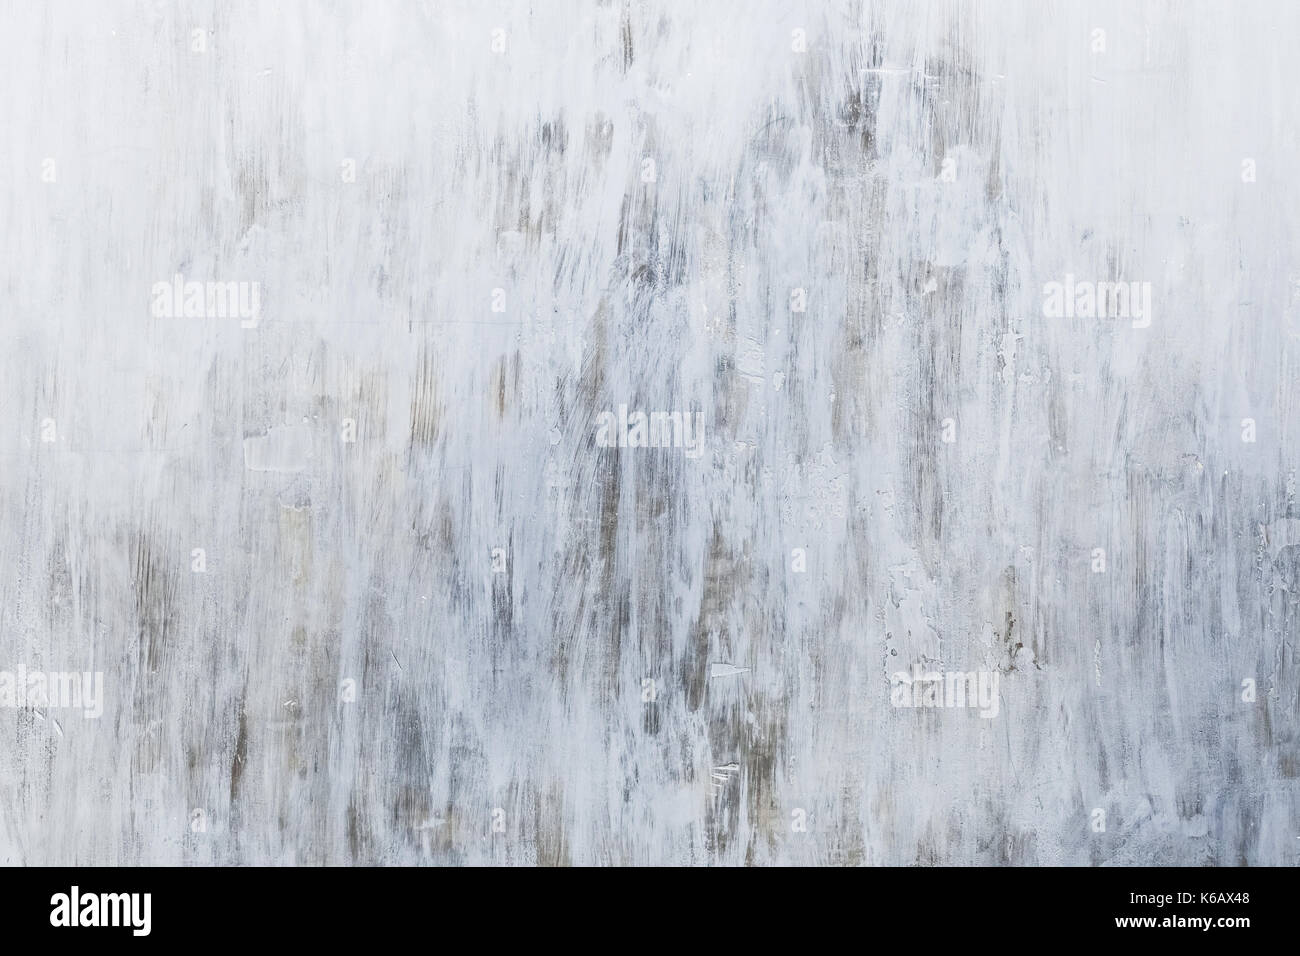 Grunge texture of gray painted wall - Stock Image